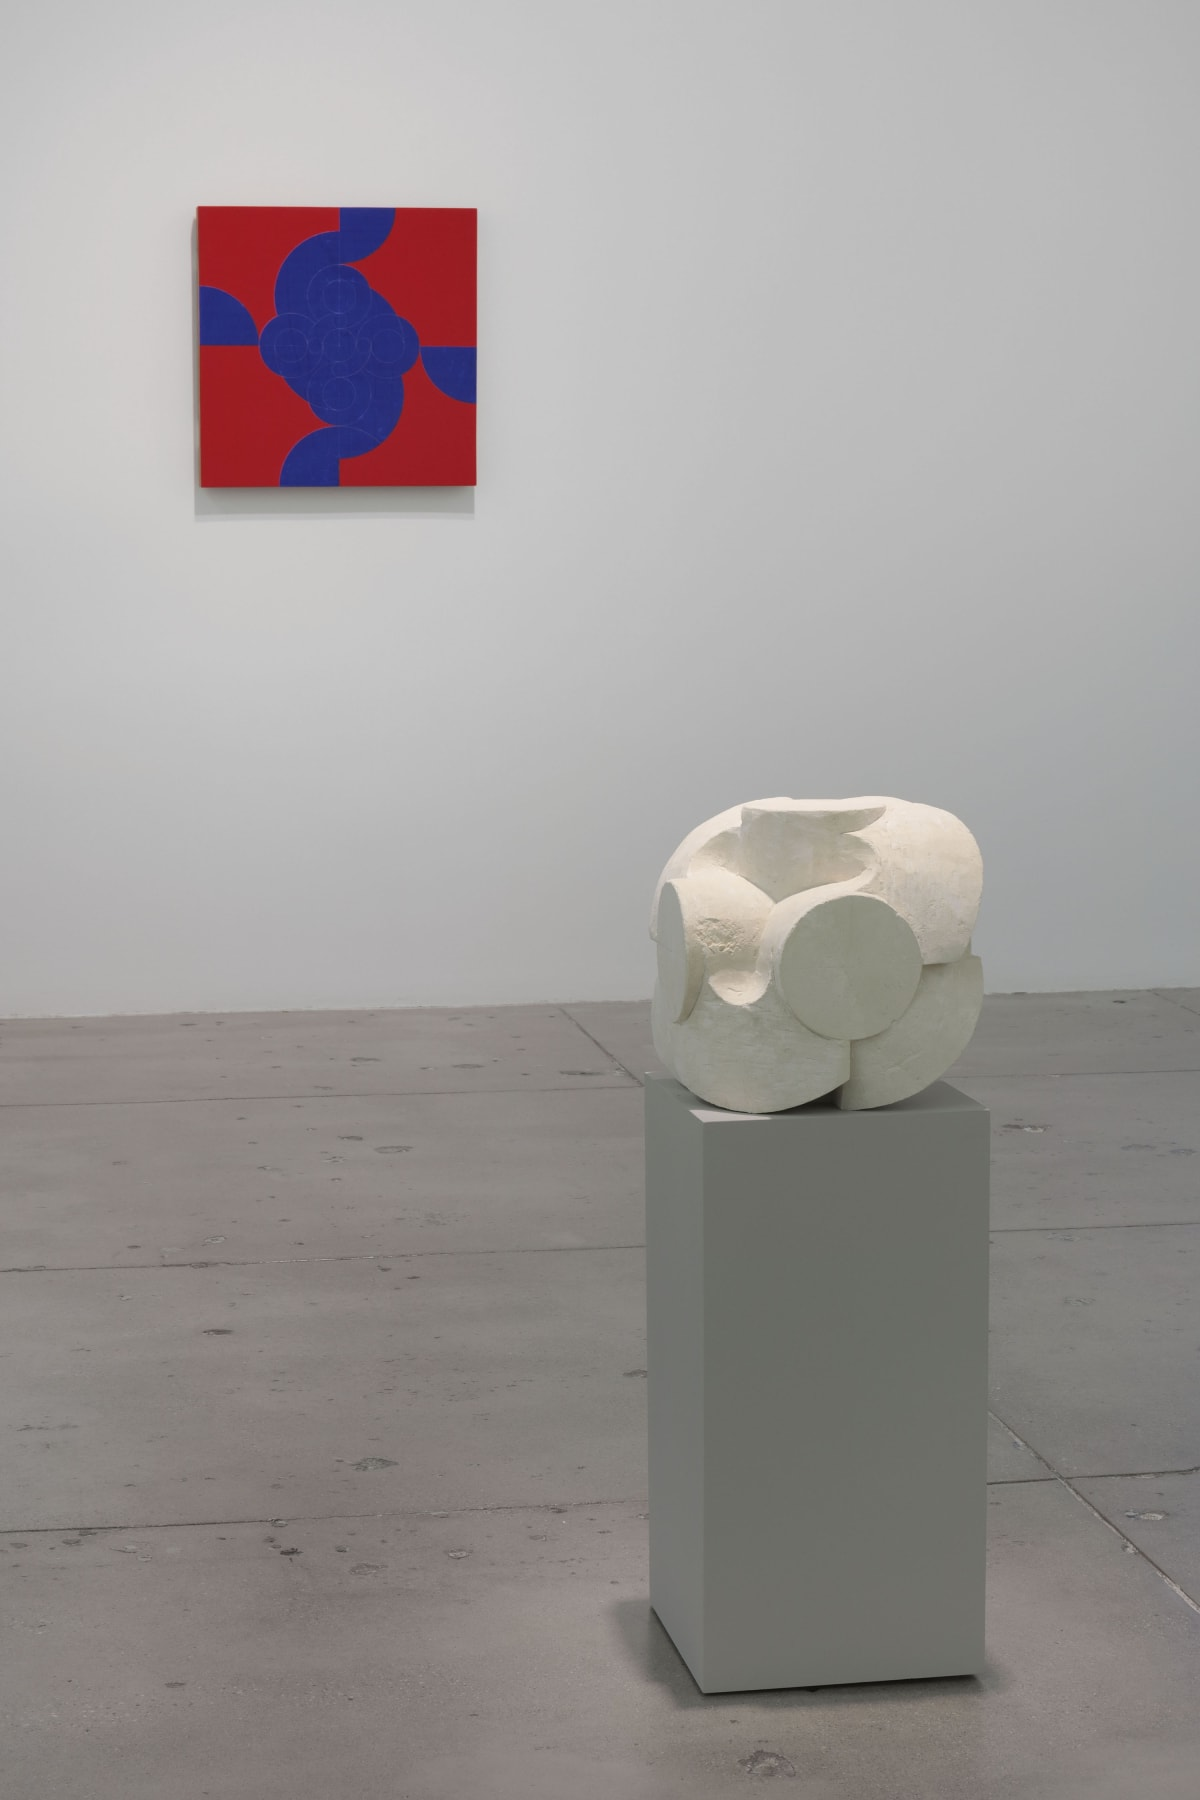 In a large white space, a small red and blue abstract painting hangs on the wall in front of 1 small, white stone sculpture.